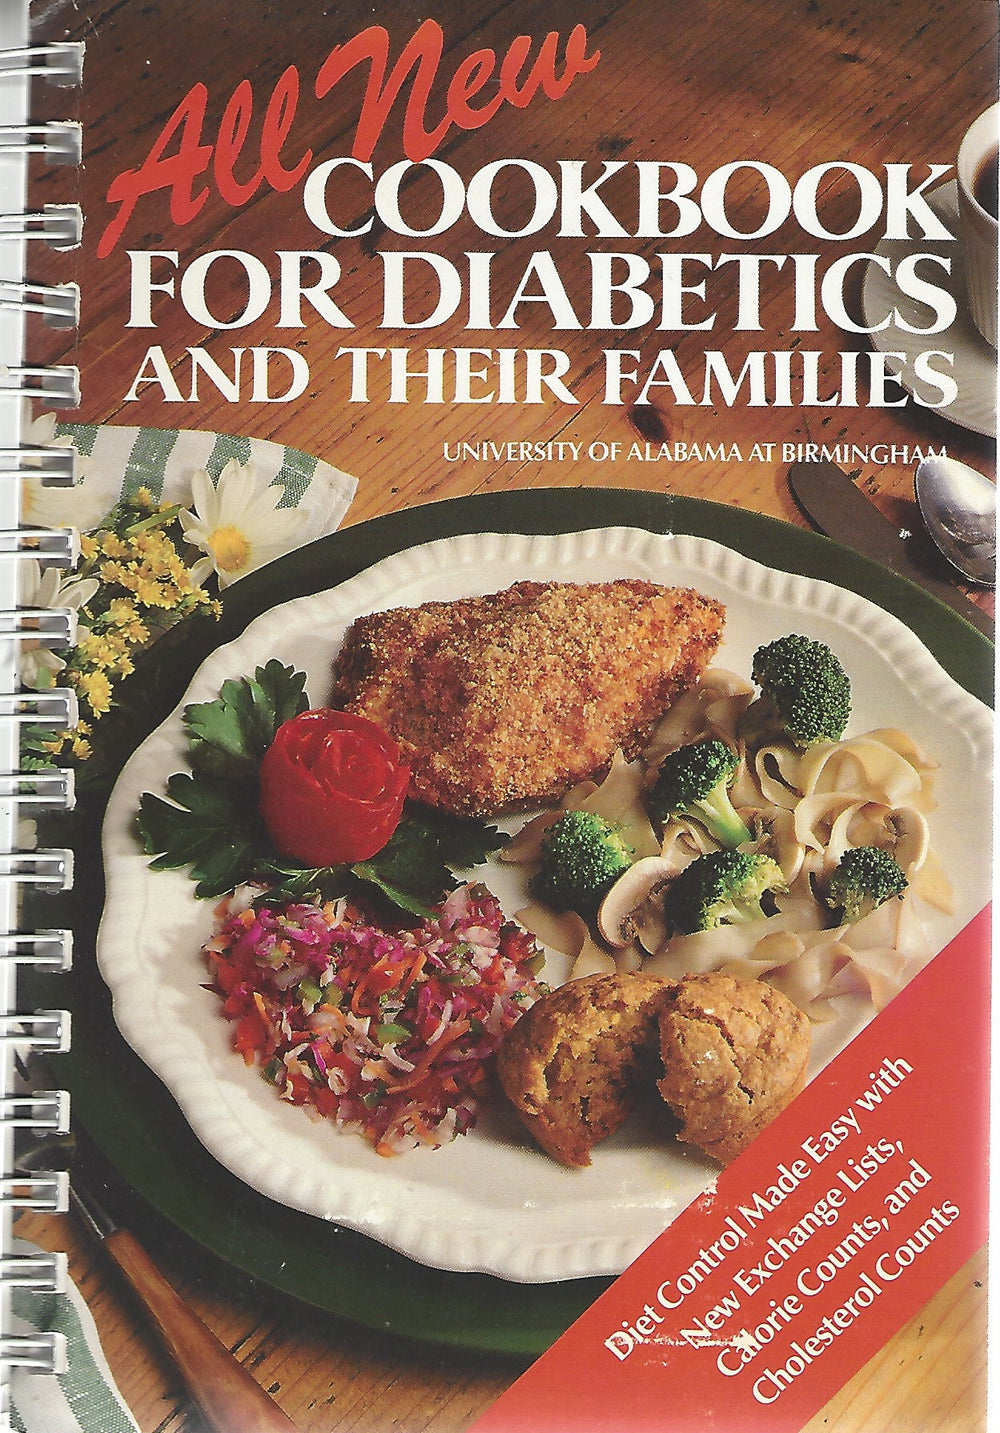 The All New Cookbook for Diabetics and Their Families from the University of Alabama at Birmingham 1988